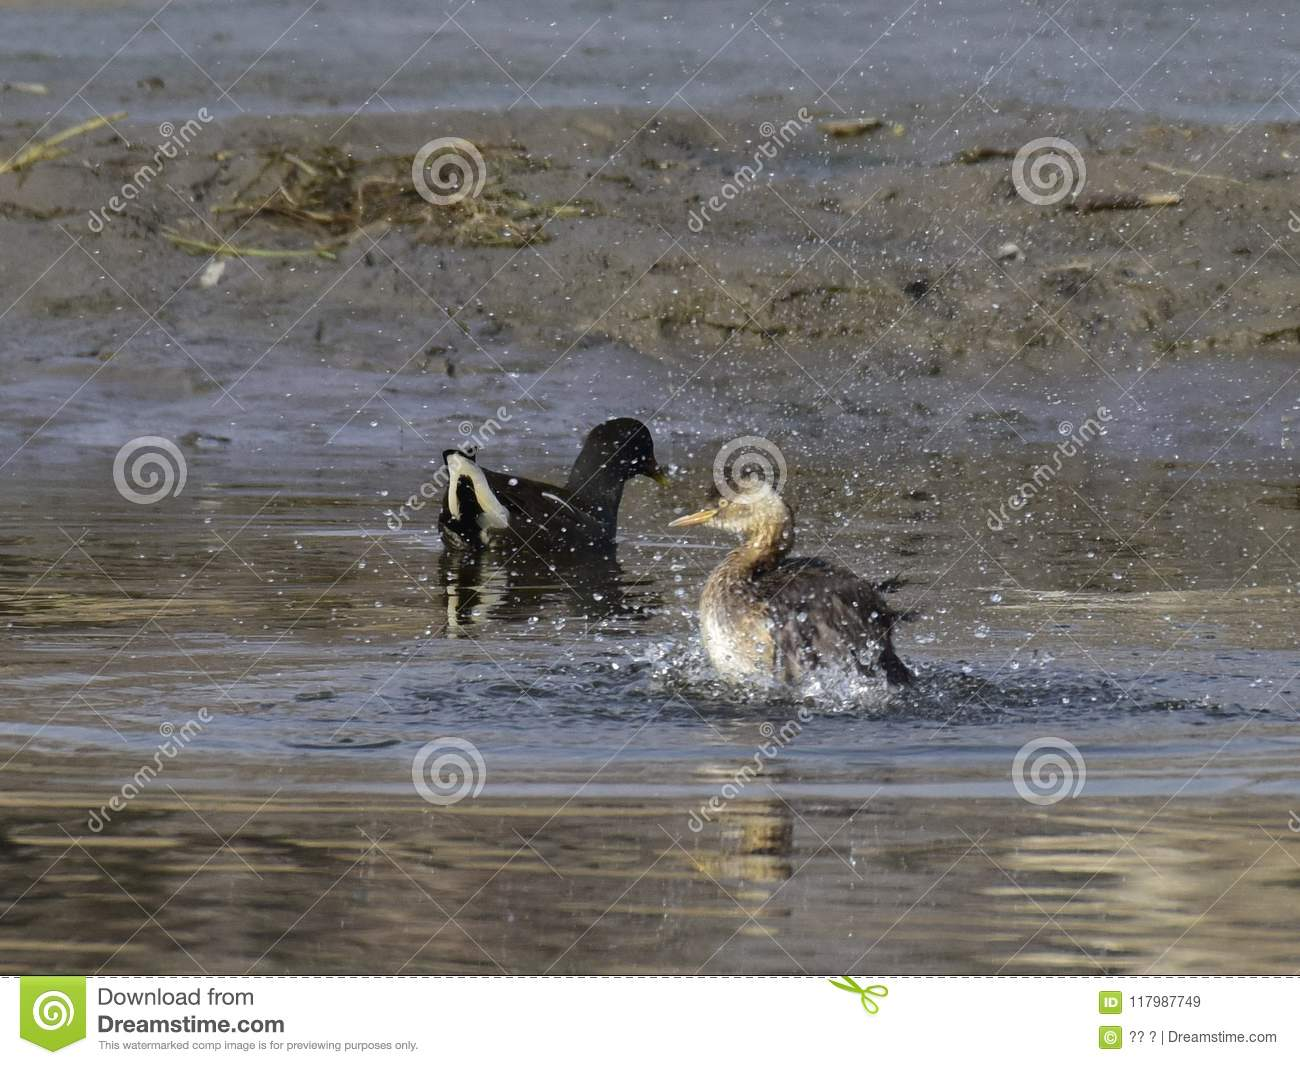 Tachybaptusruficollis In The Water Of The Lake Stock Image